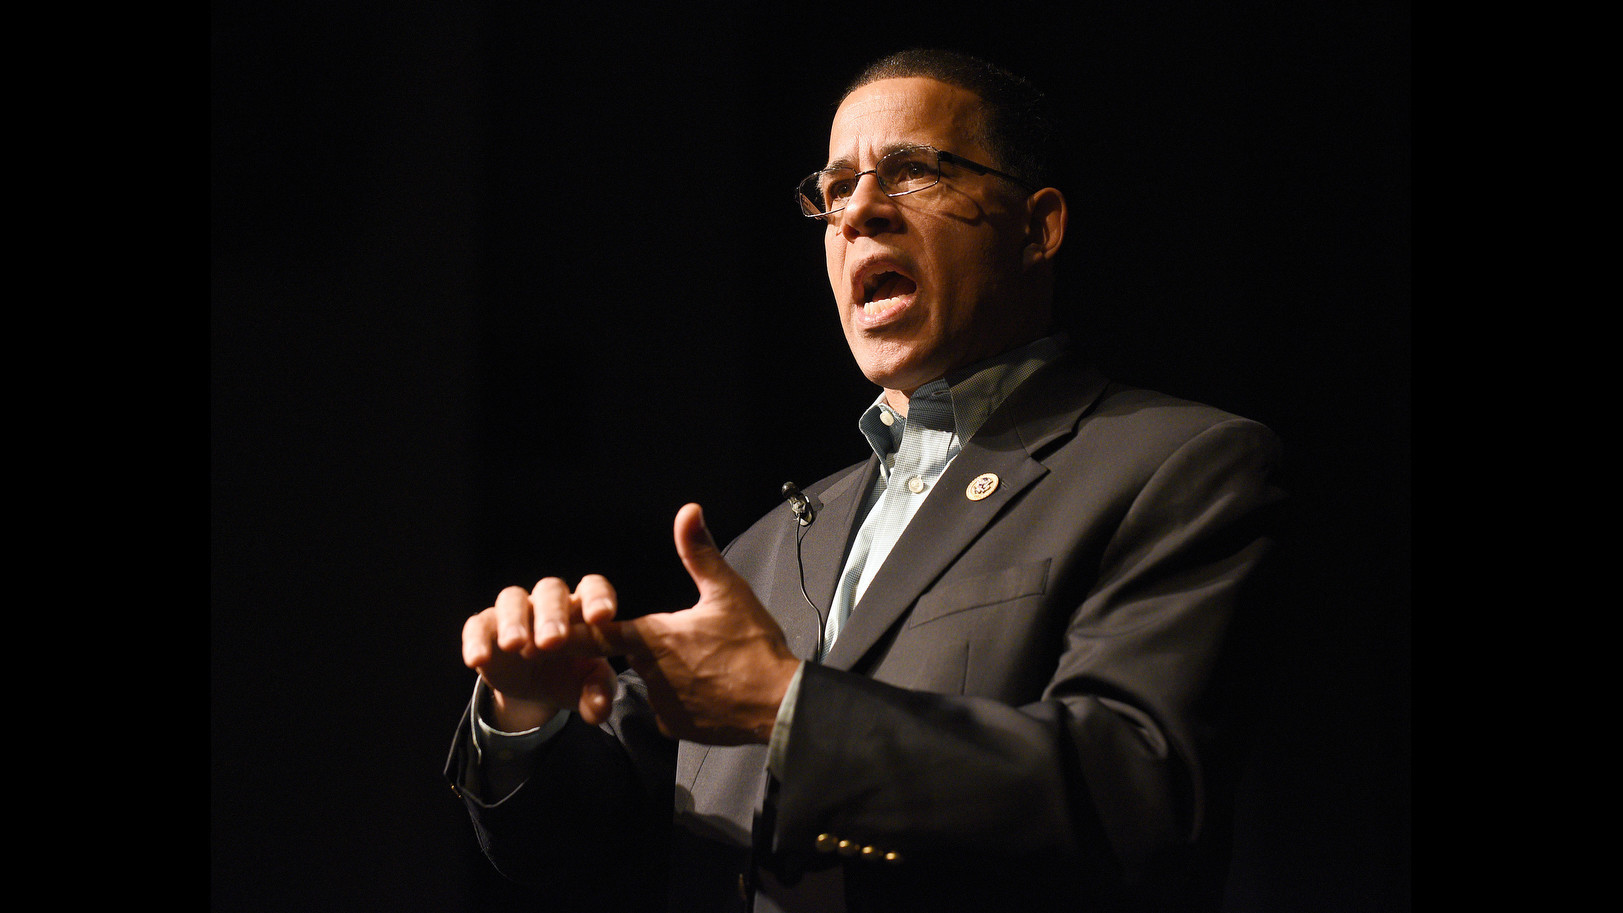 Rep. Anthony Brown To Hold Question-and-answer Event In Crofton